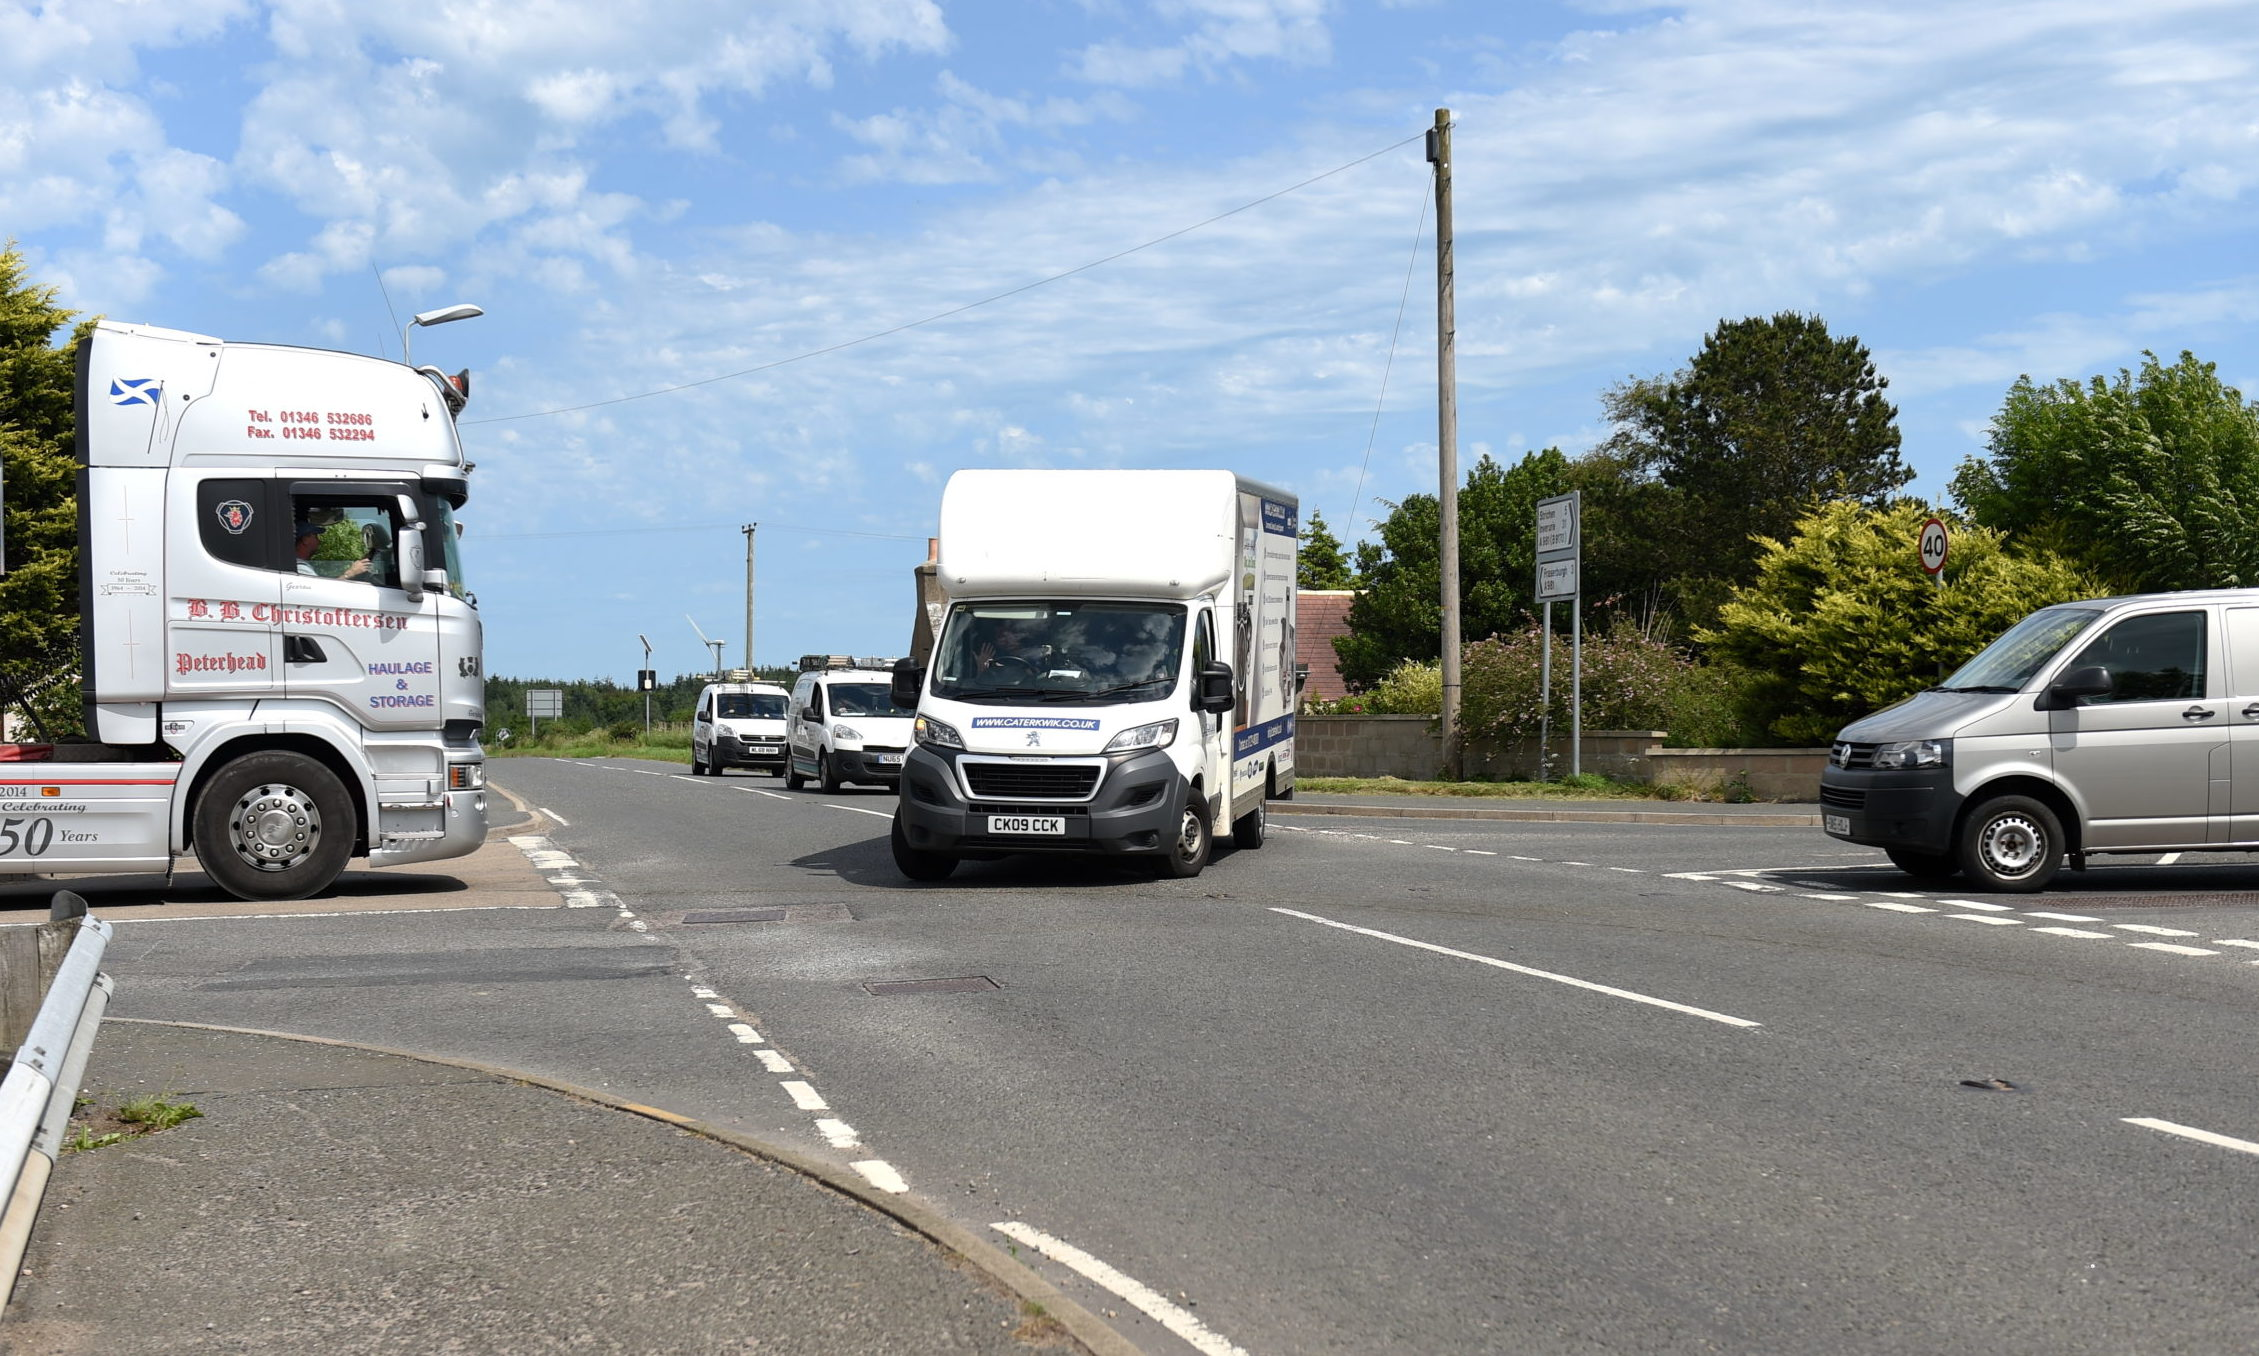 A traffic survey is to be carried out at junction of the A981 / B9032.